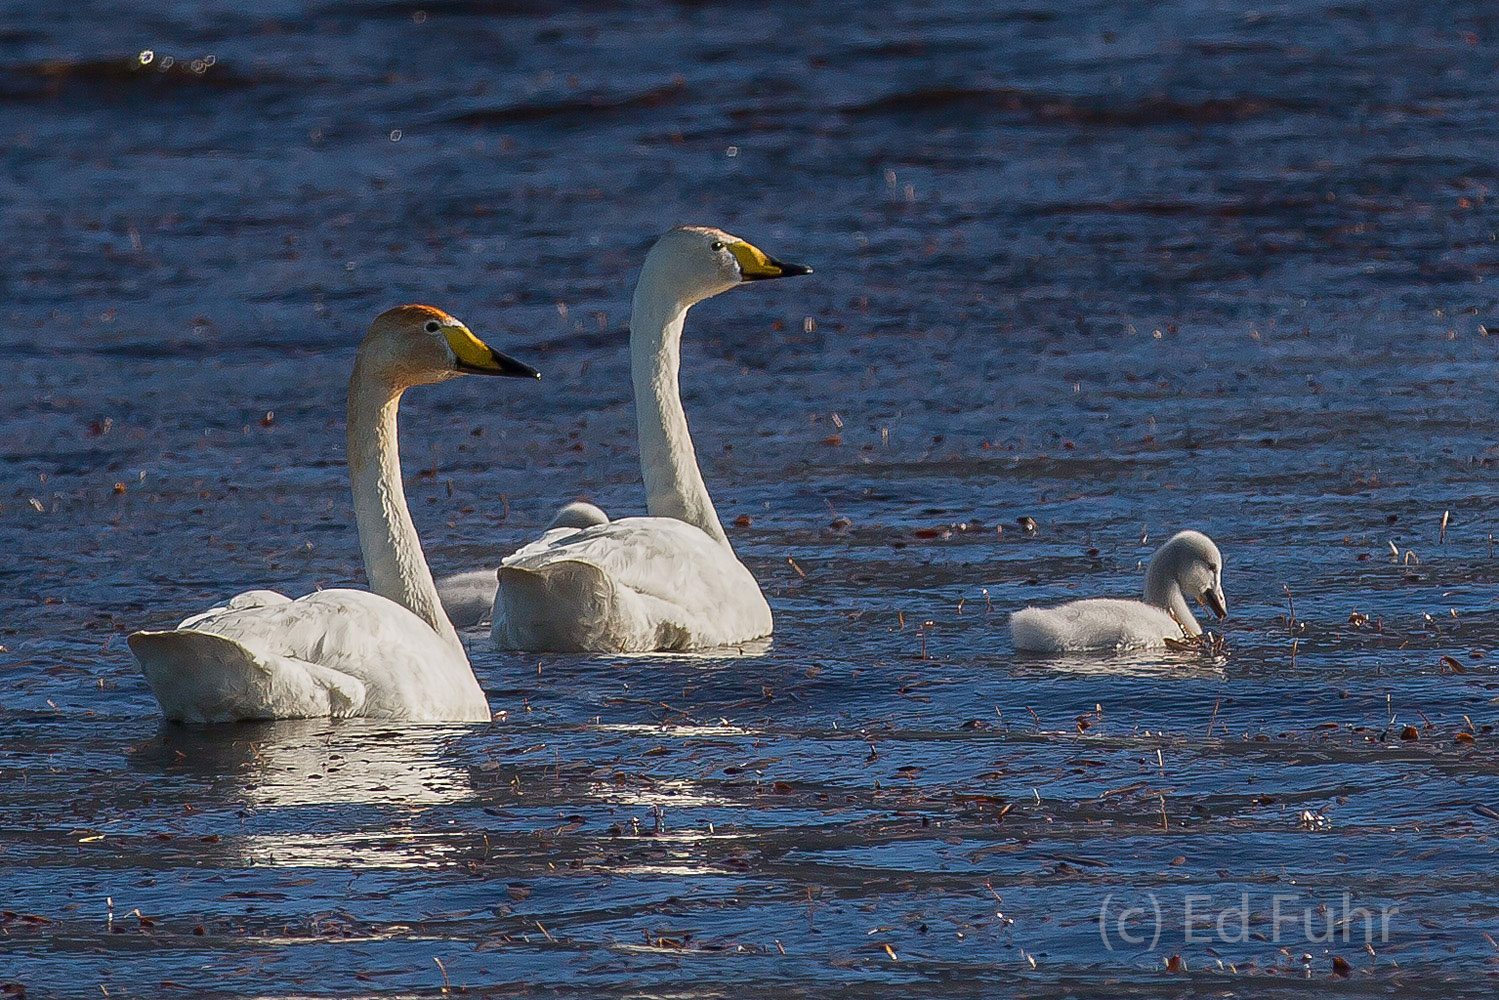 A couple of whooper swans, and their lone cygnet, paddle through the still waters of a shallow bay.  These swans are the only...